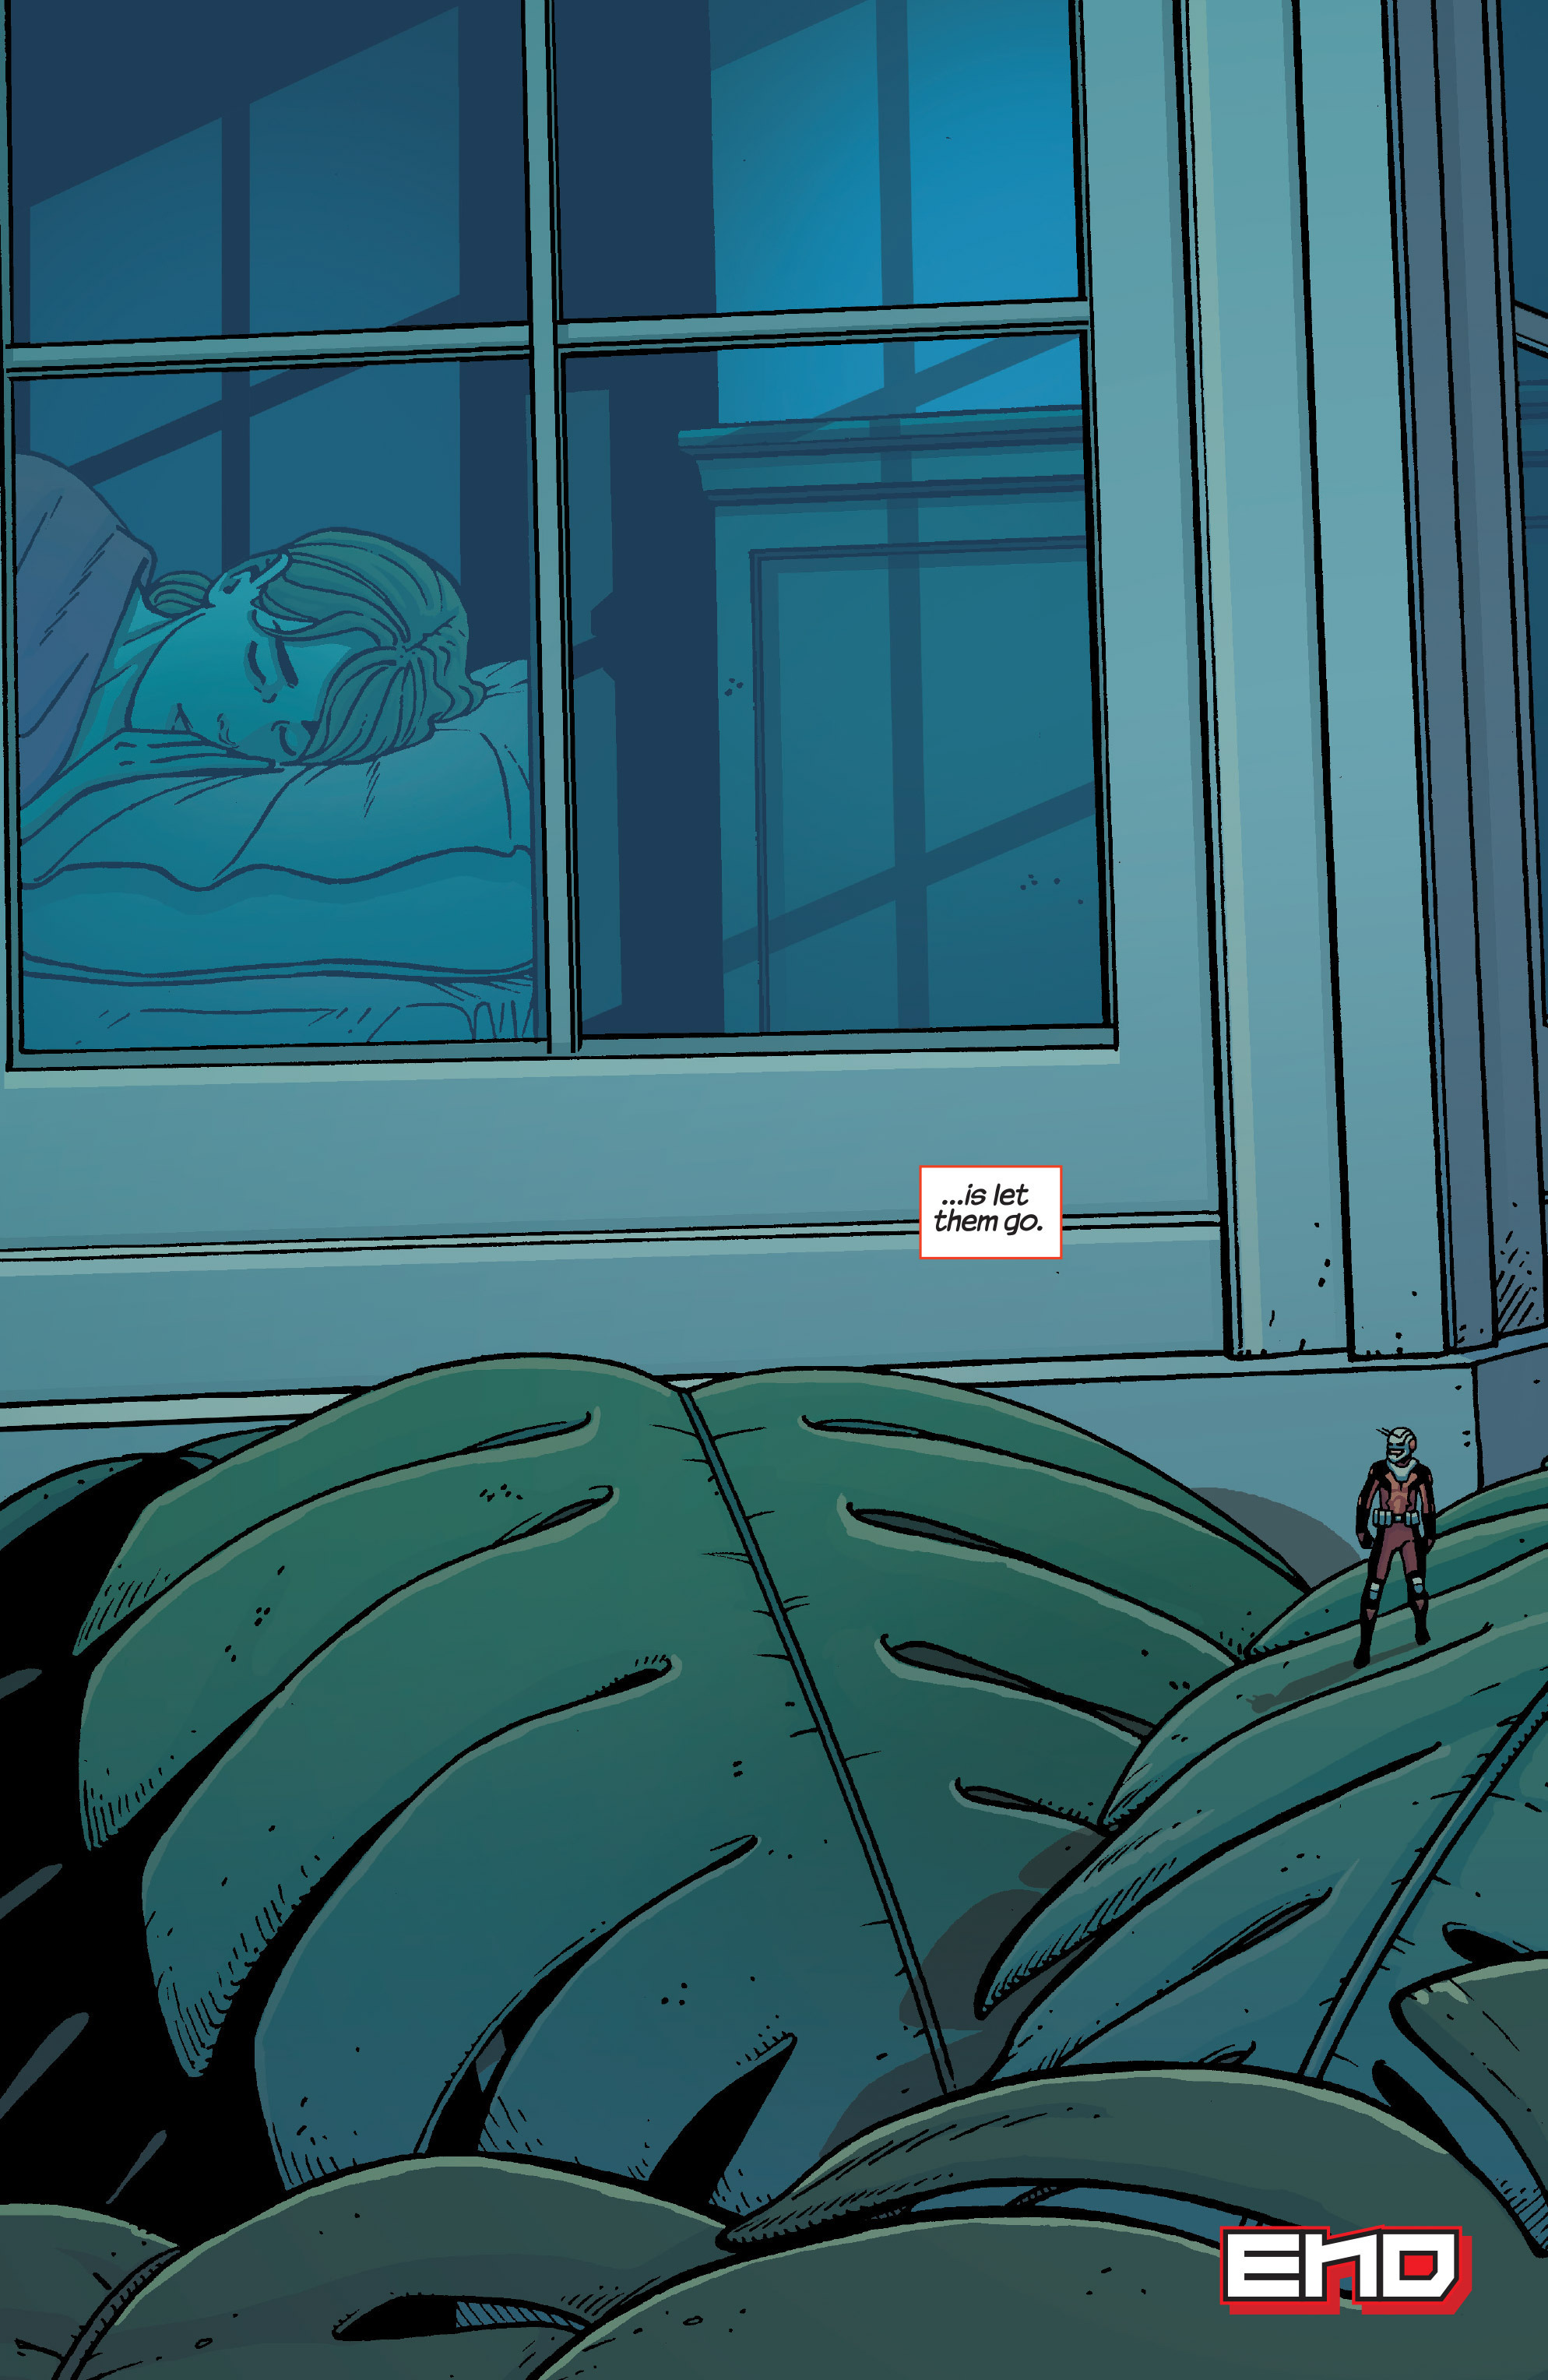 Read online Ant-Man comic -  Issue #5 - 23